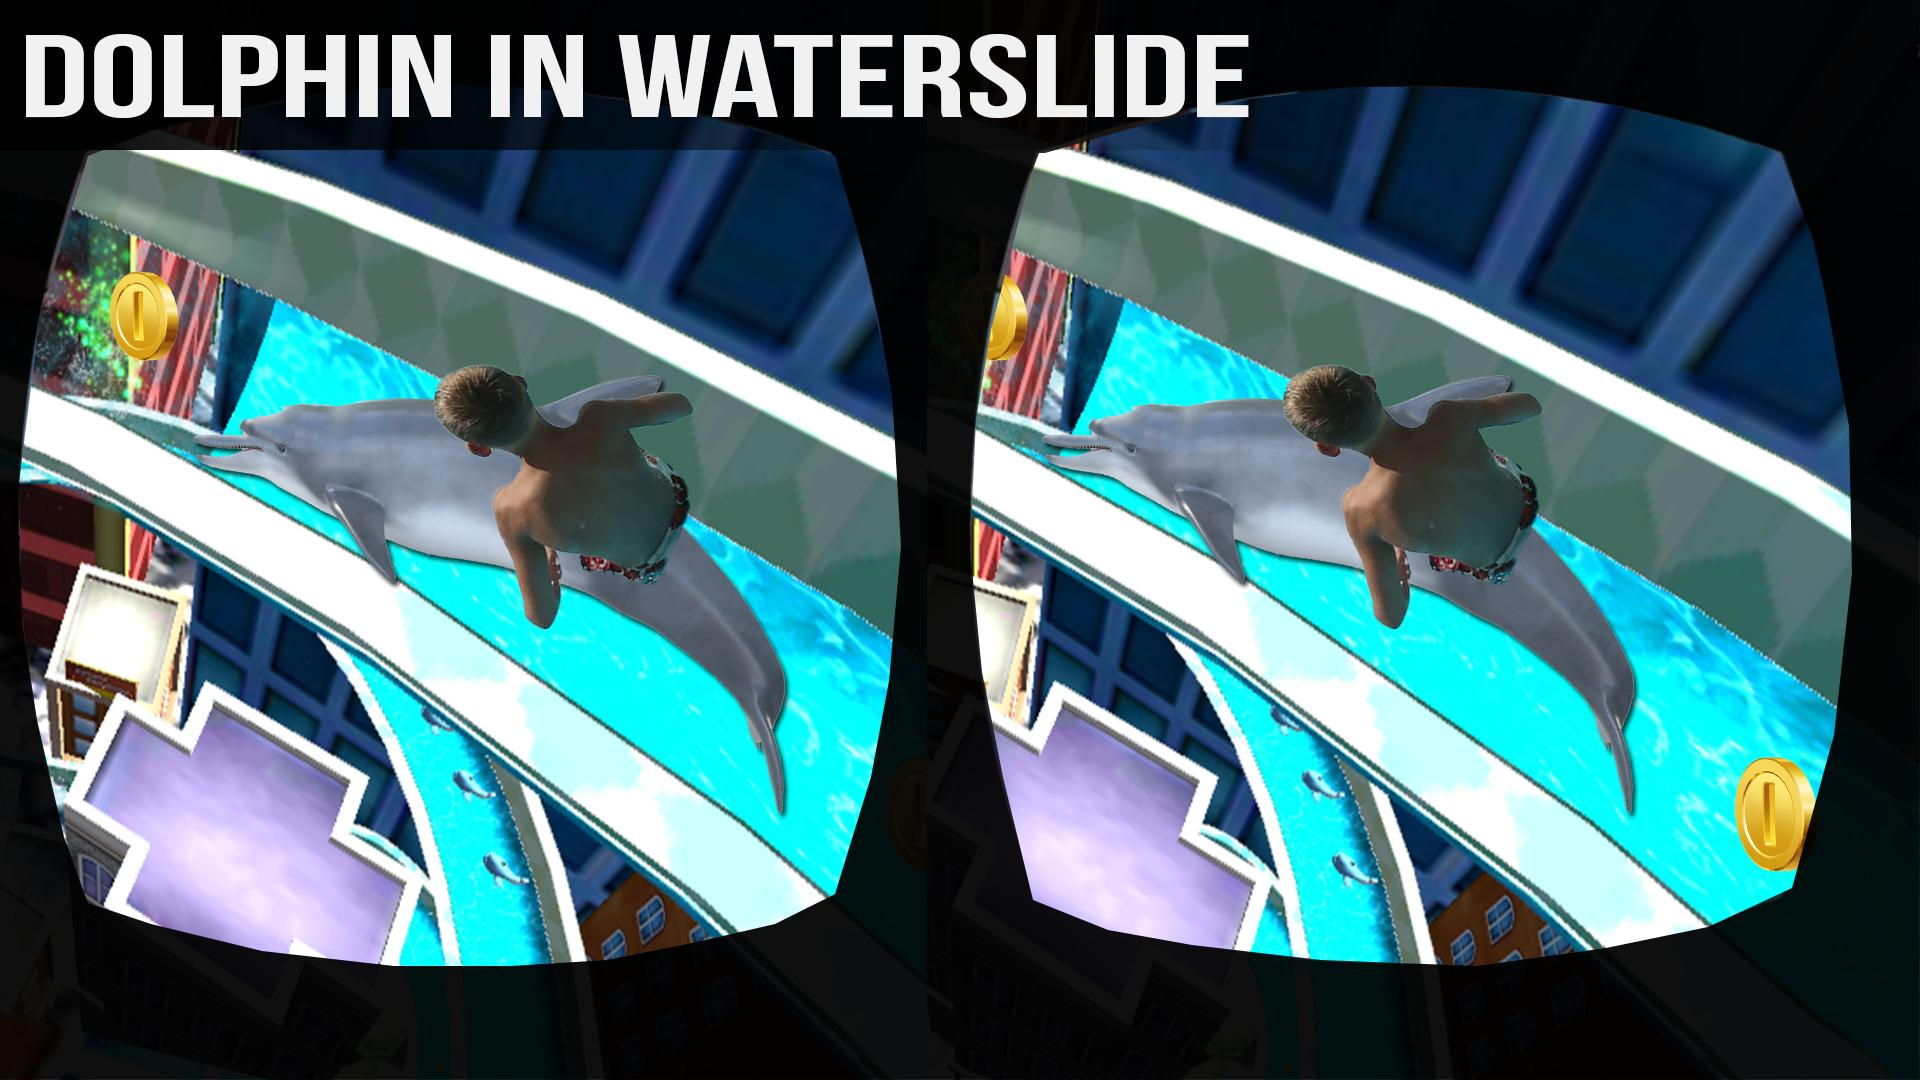 VR Water Slide Adventure-Dolphin Ride 3D for Android - APK Download